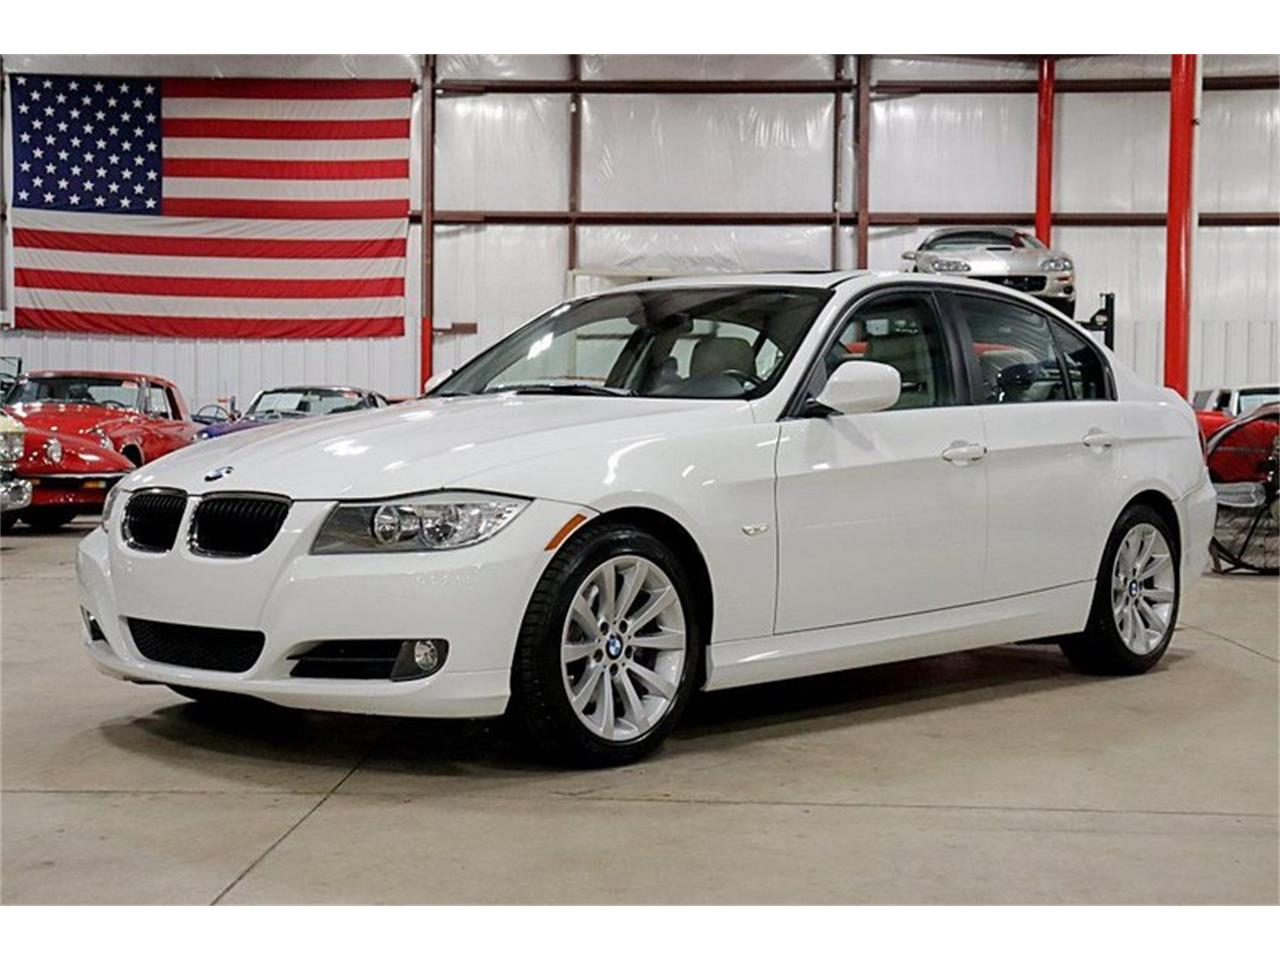 for sale 2011 bmw 328i in kentwood, michigan cars - grand rapids, mi at geebo